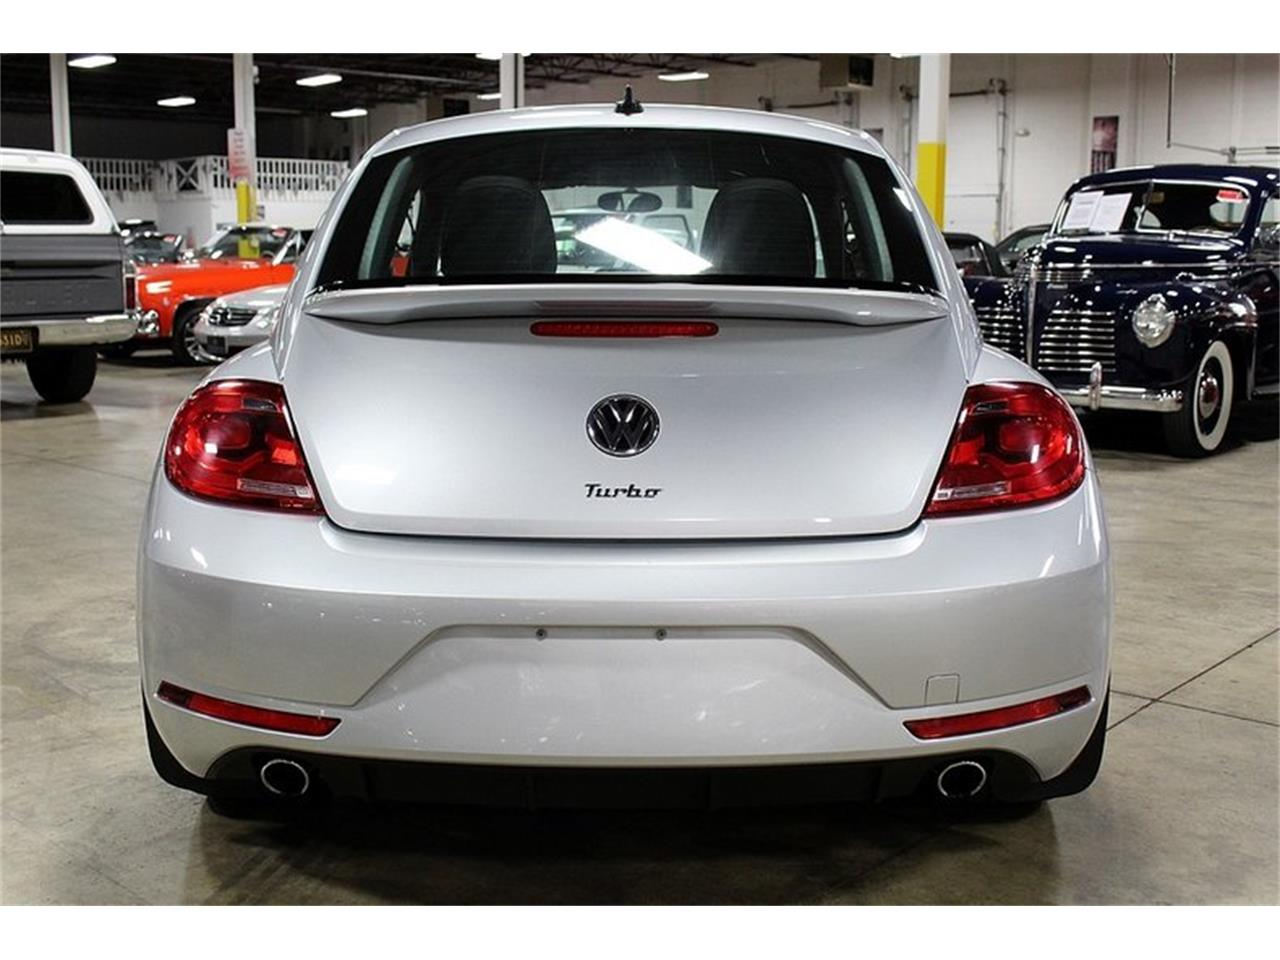 Large Picture of '14 Volkswagen Beetle located in Michigan - $15,900.00 - OIFD